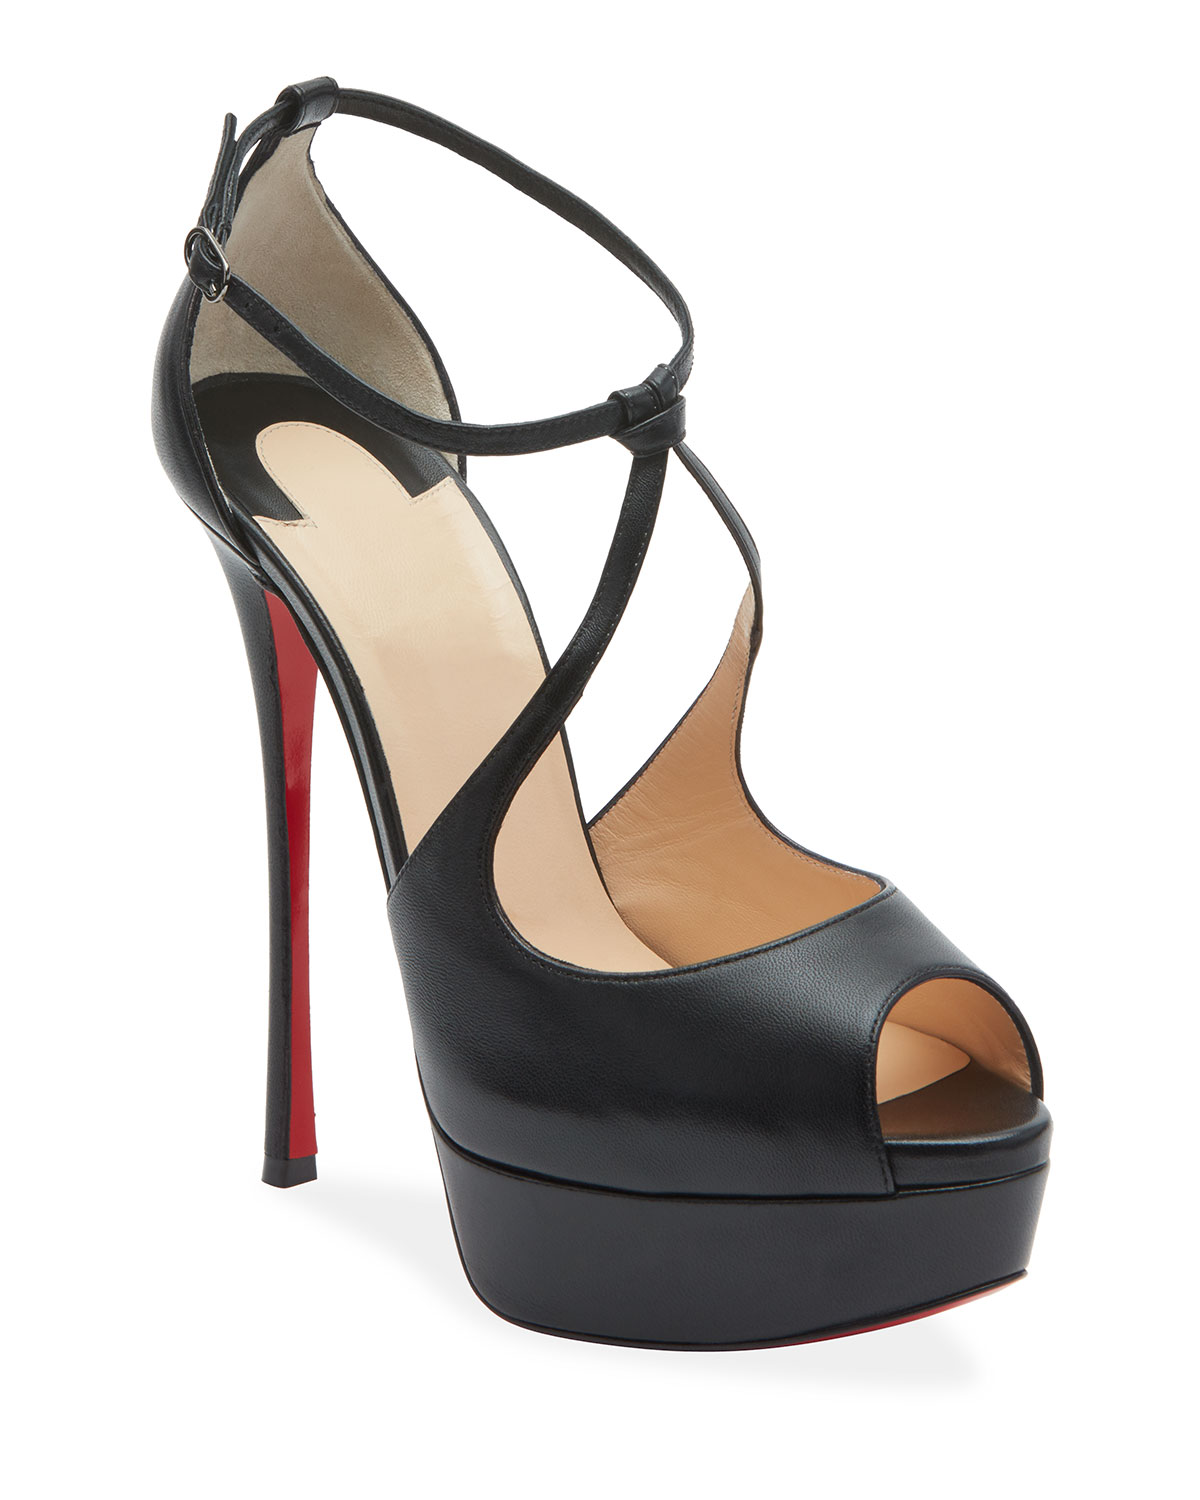 9487aca0848 Christian Louboutin Alminalta Napa Red Sole Sandals